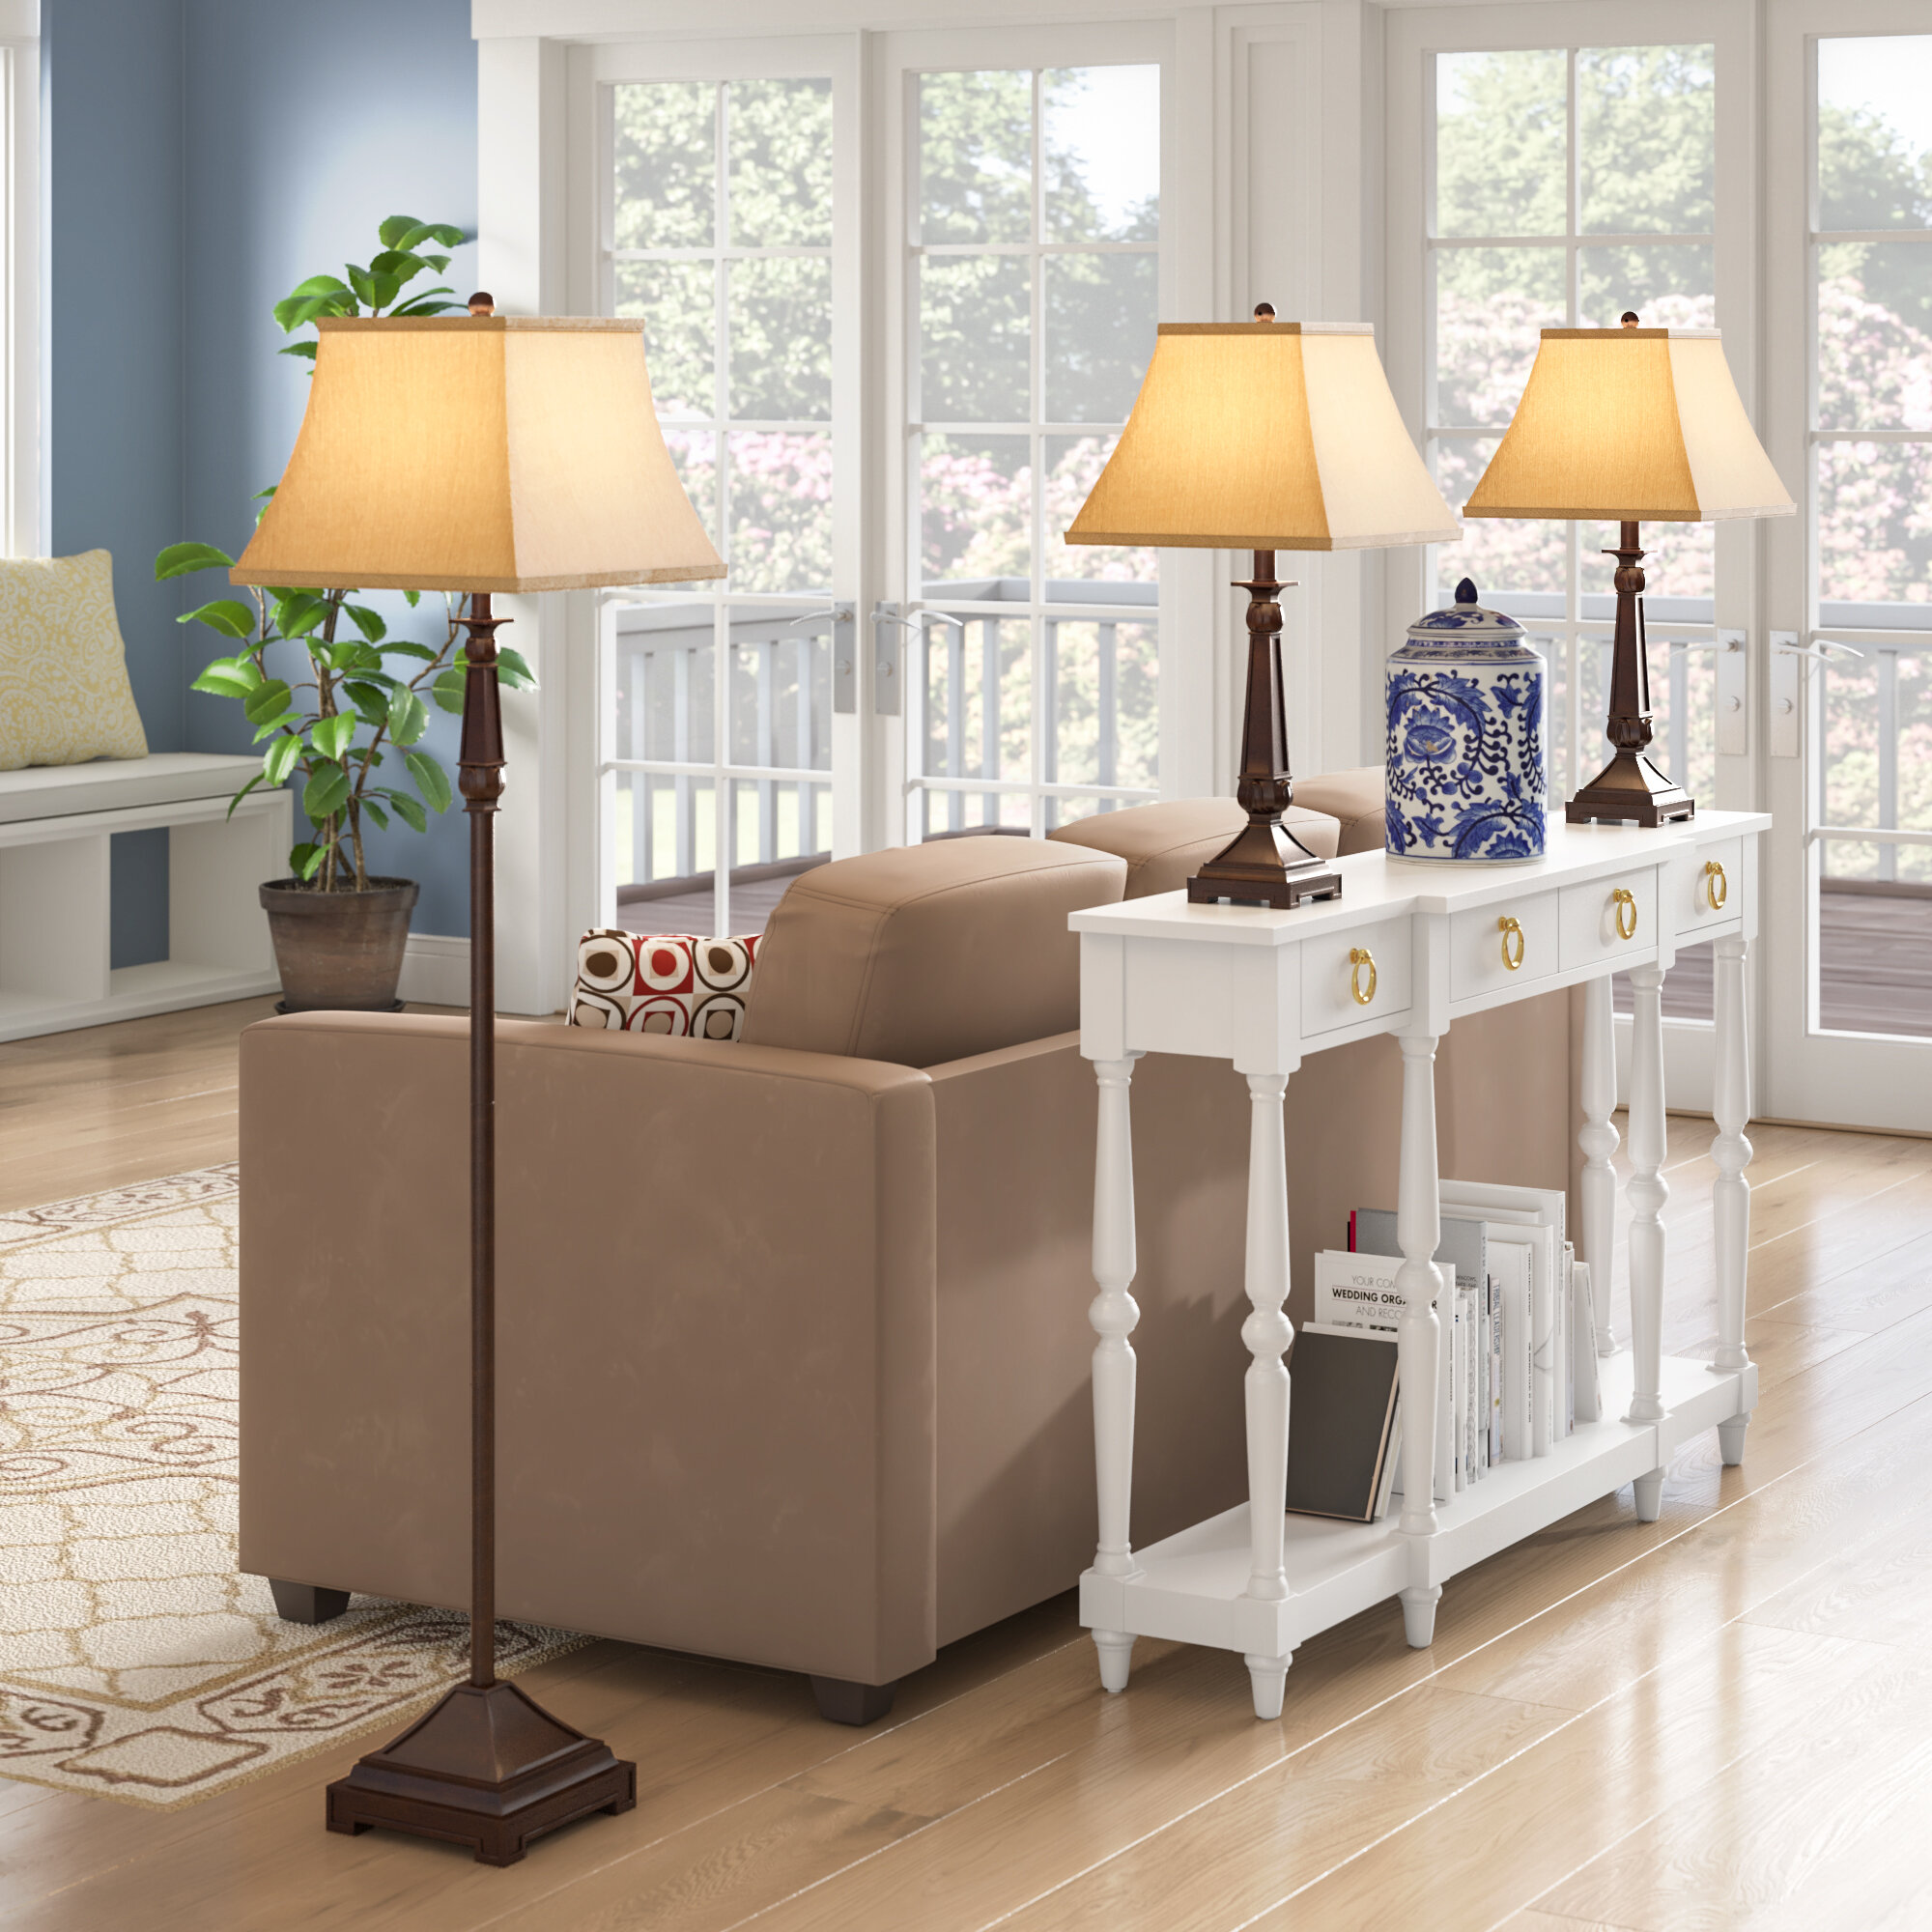 Soliz 3 Piece Floor And Table Lamp Set